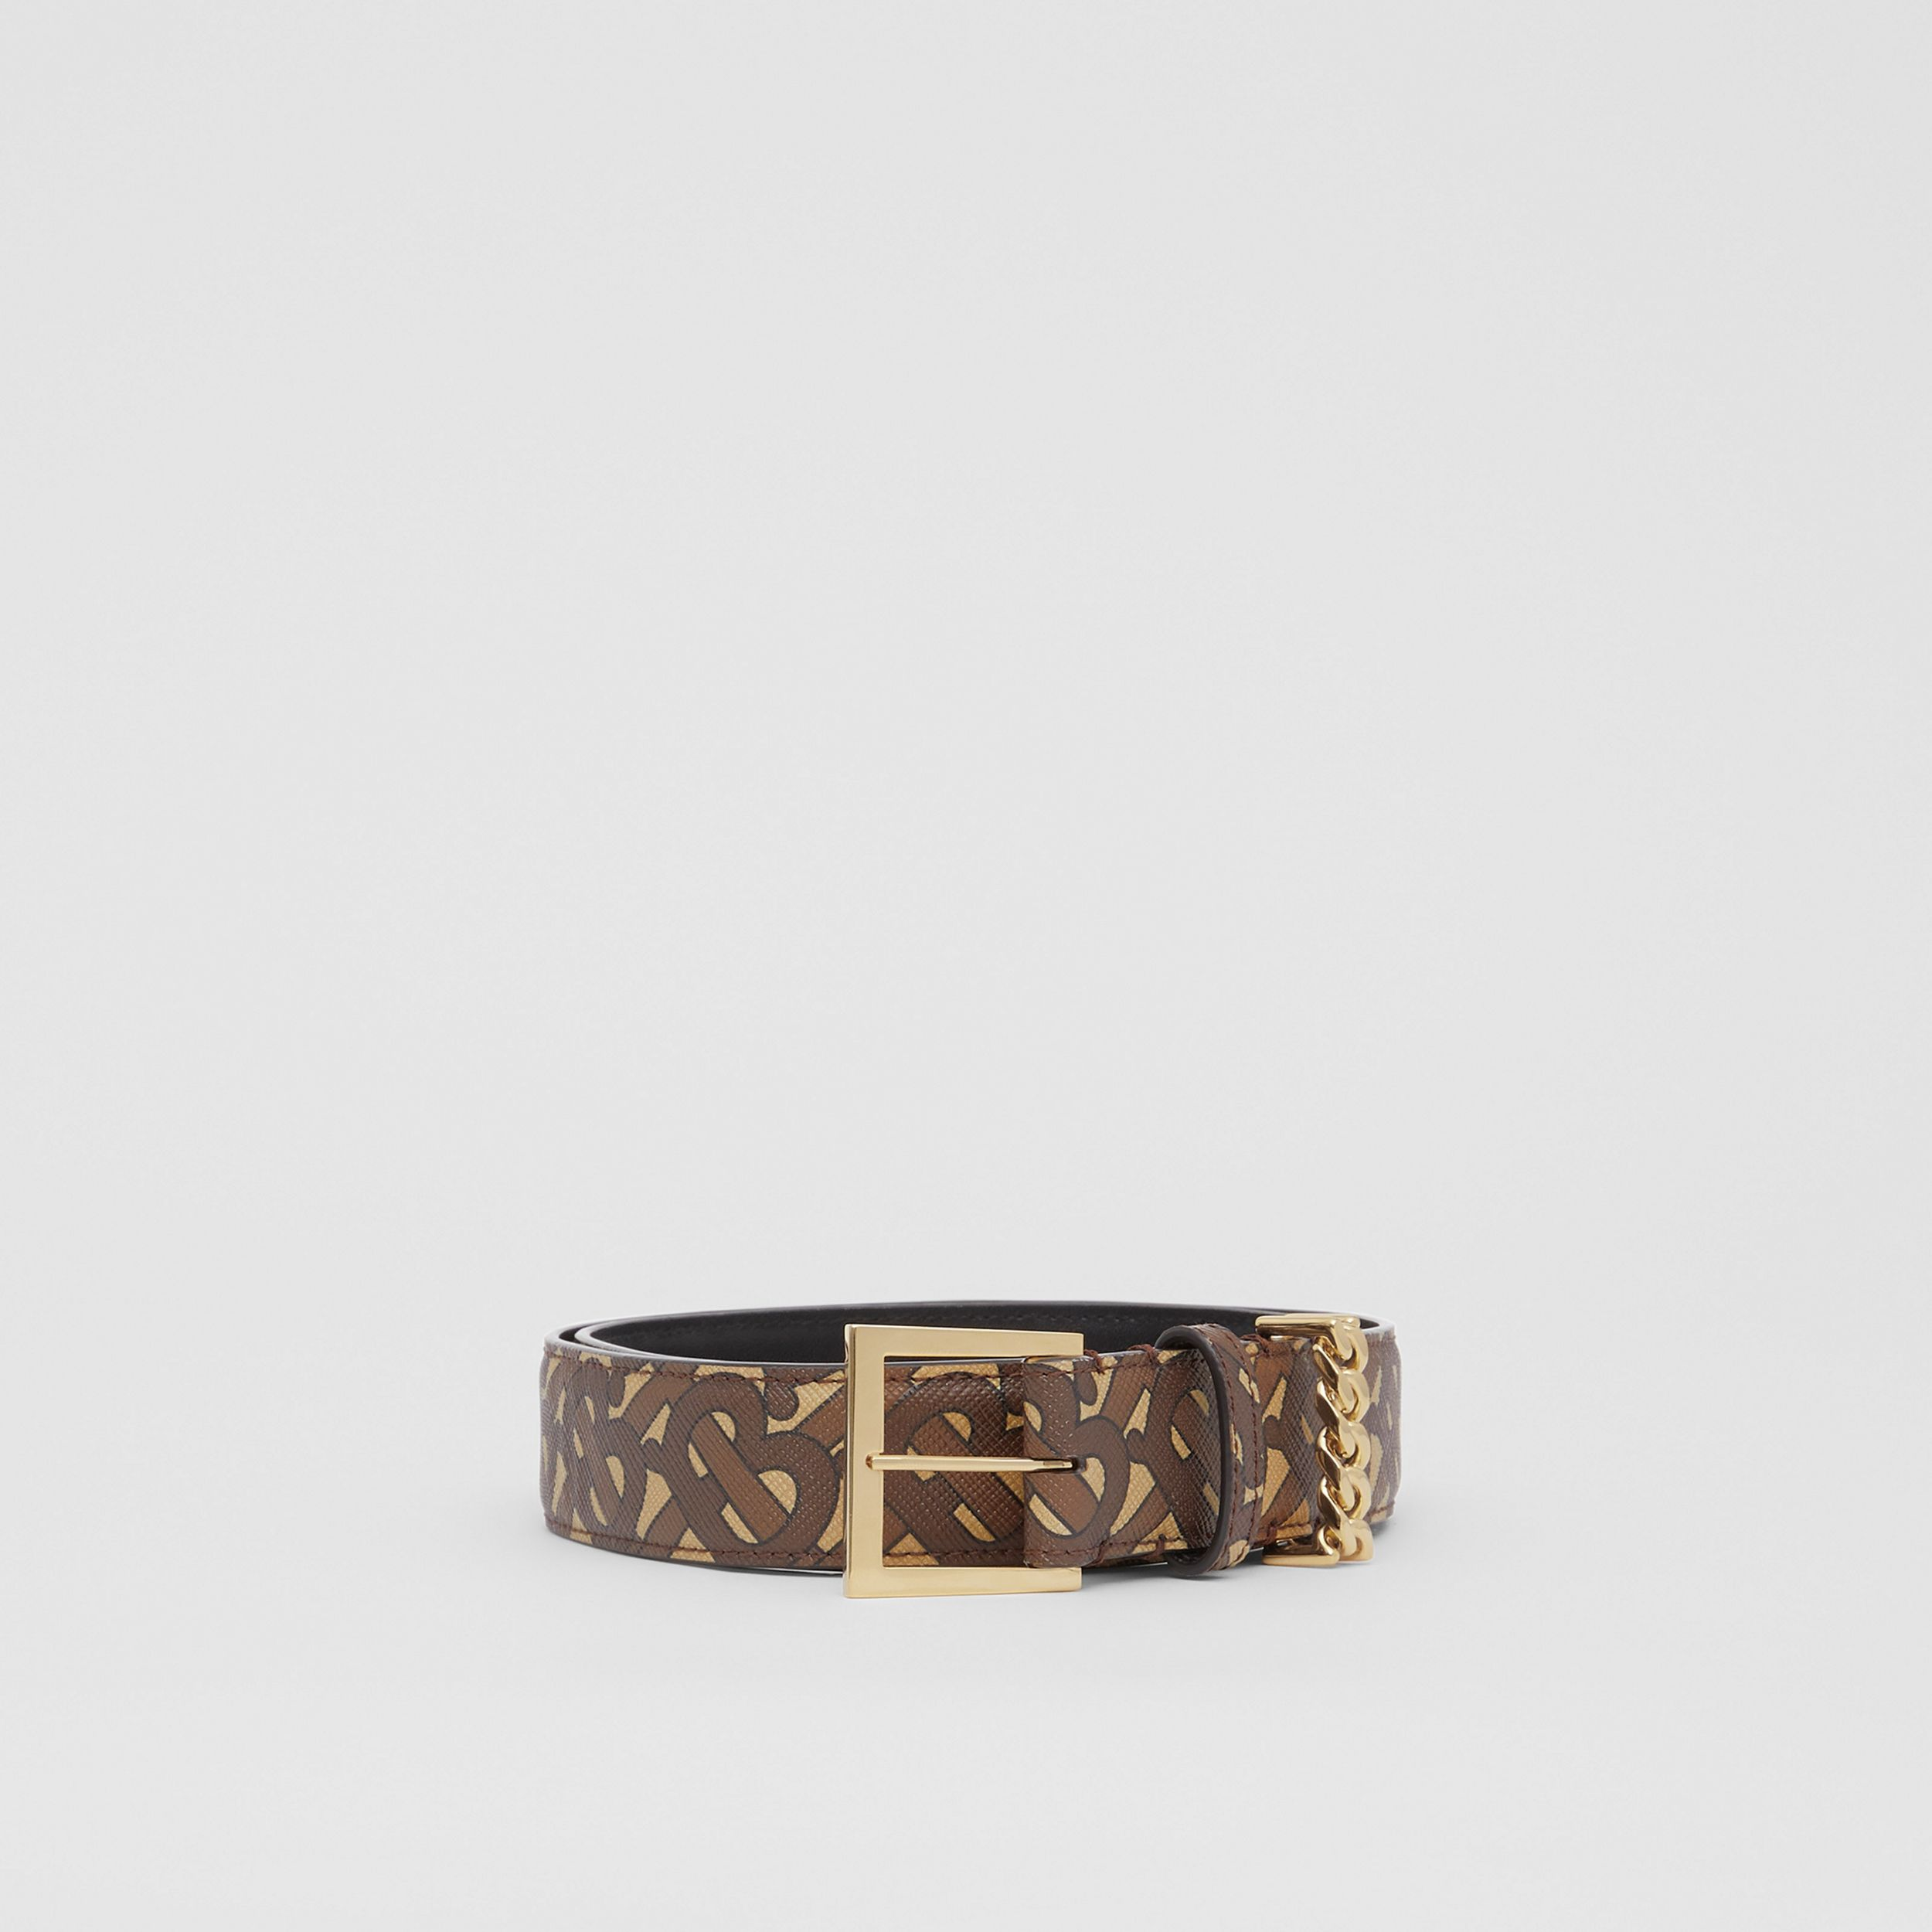 Chain Detail Monogram Print E-canvas Belt in Bridle Brown - Women | Burberry - 4